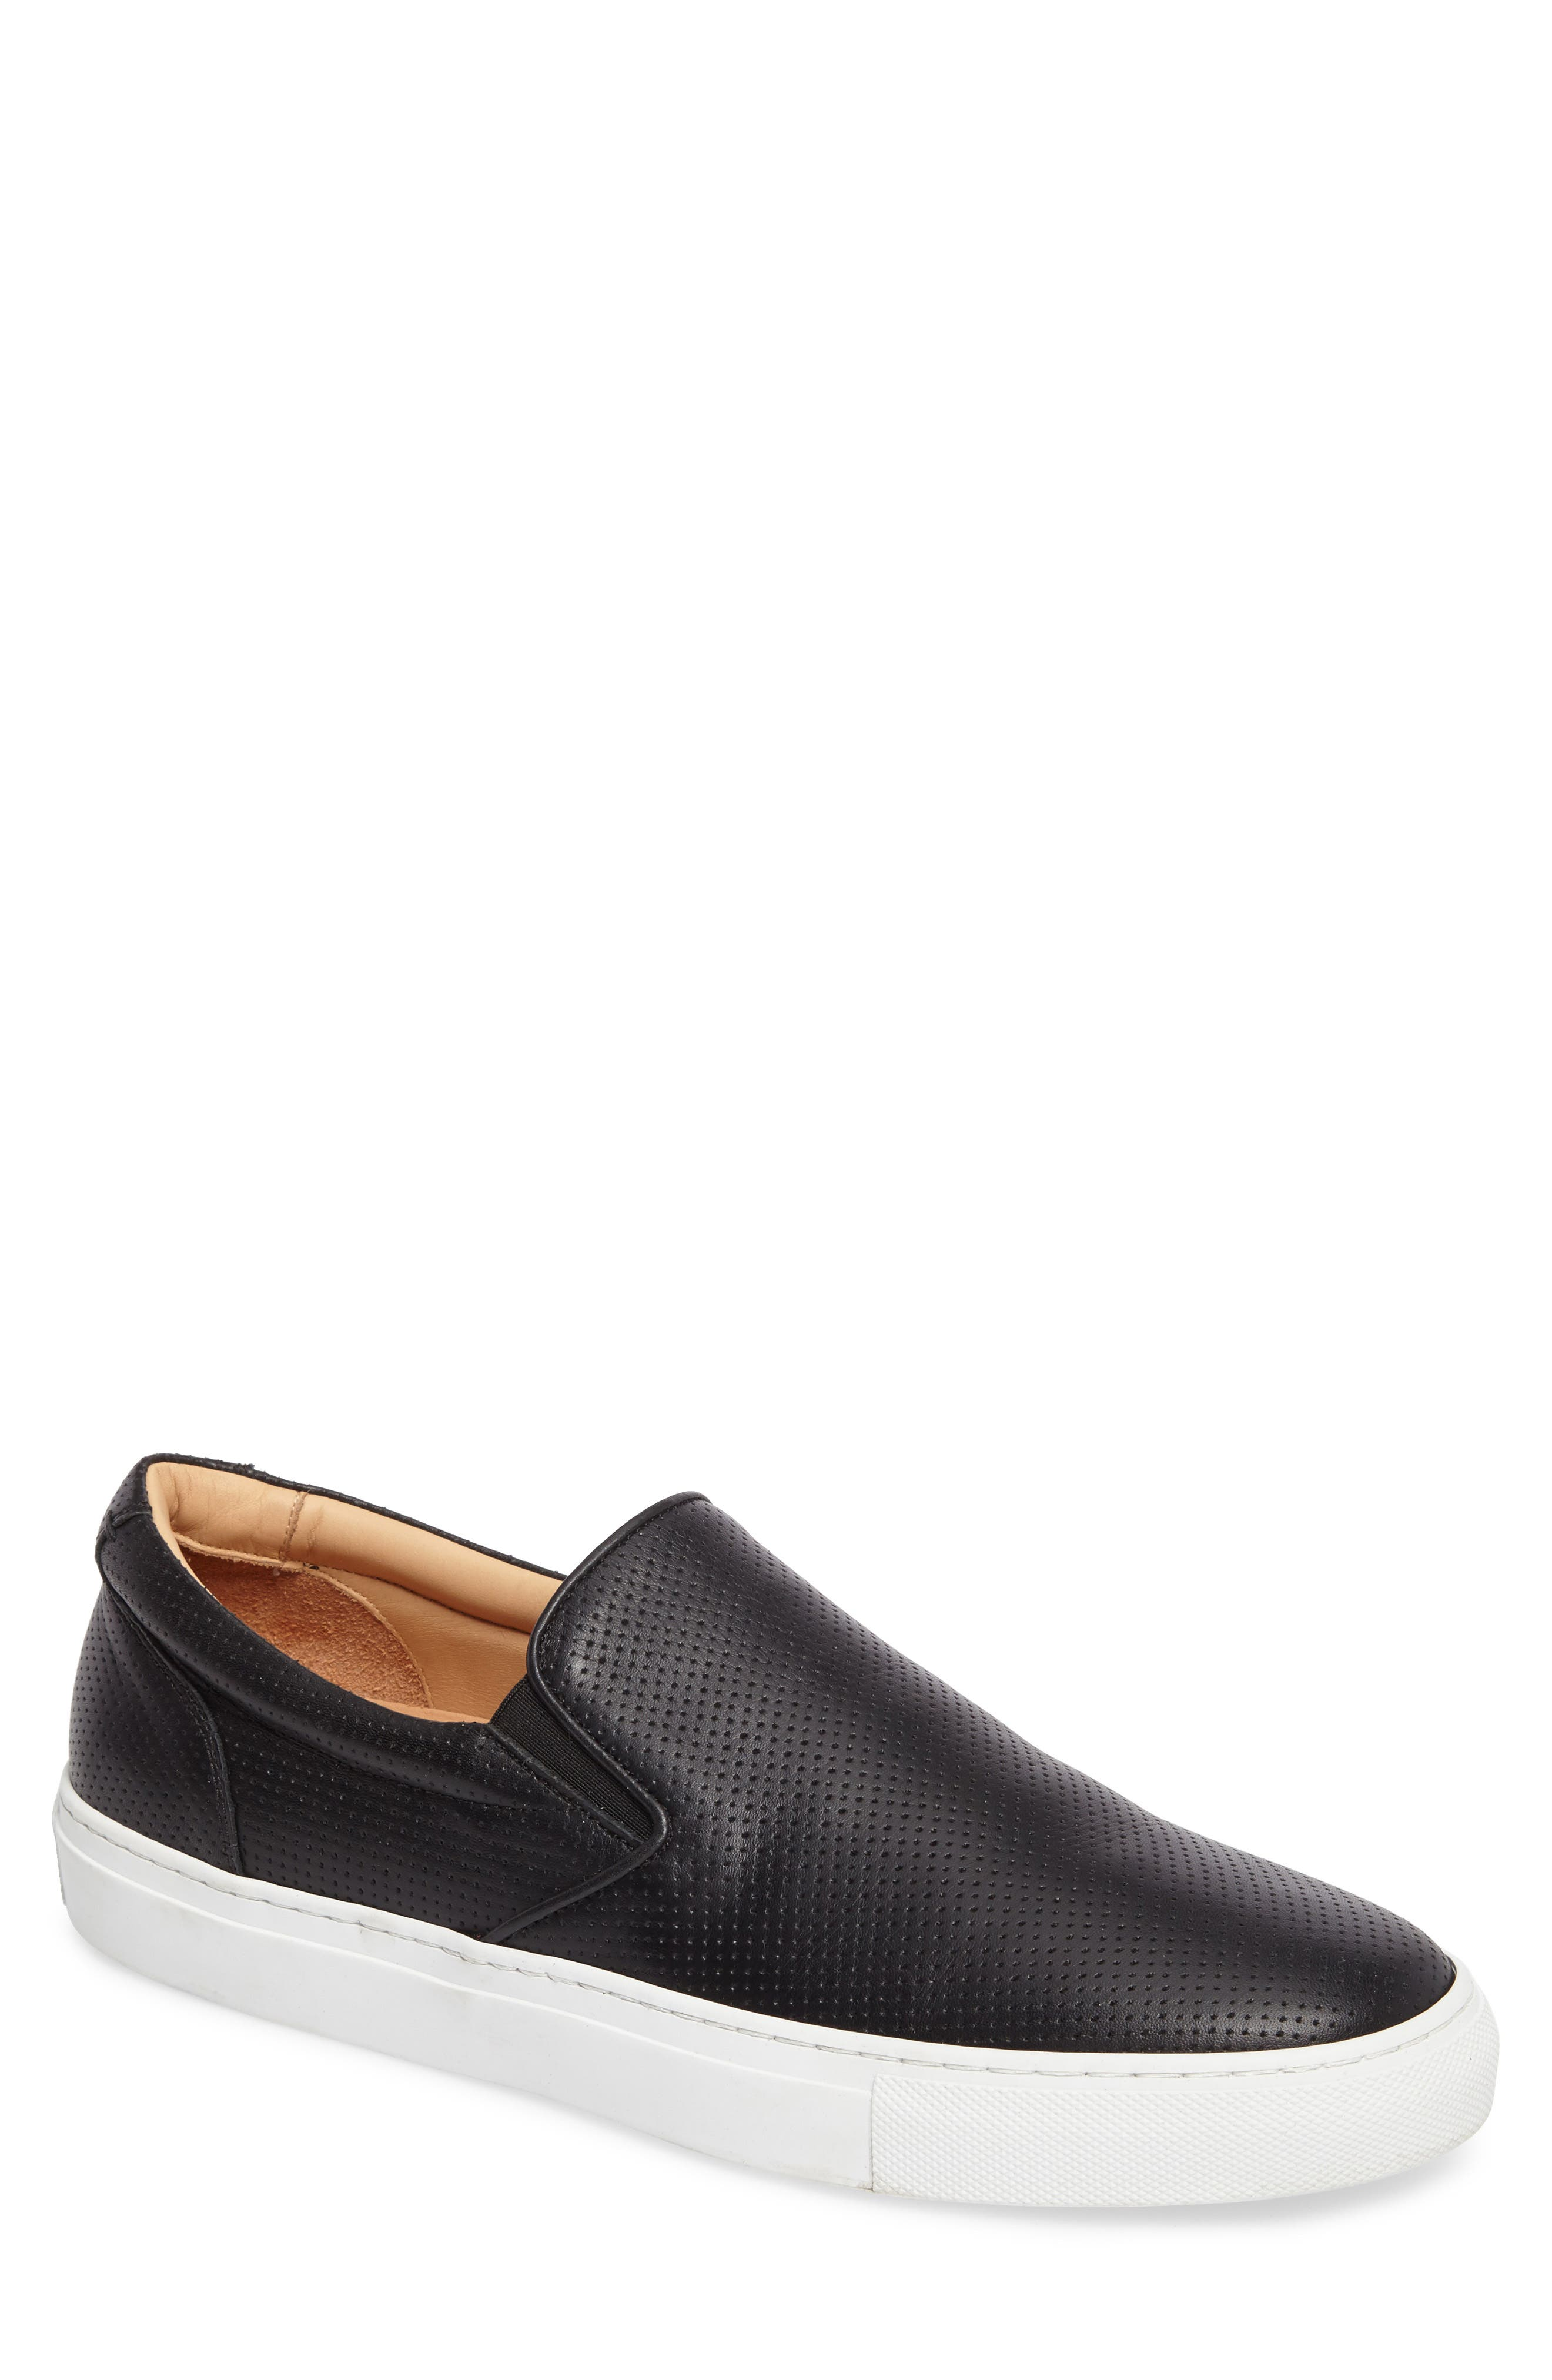 Wooster Slip-On Sneaker,                         Main,                         color, BLACK PERFORATED LEATHER